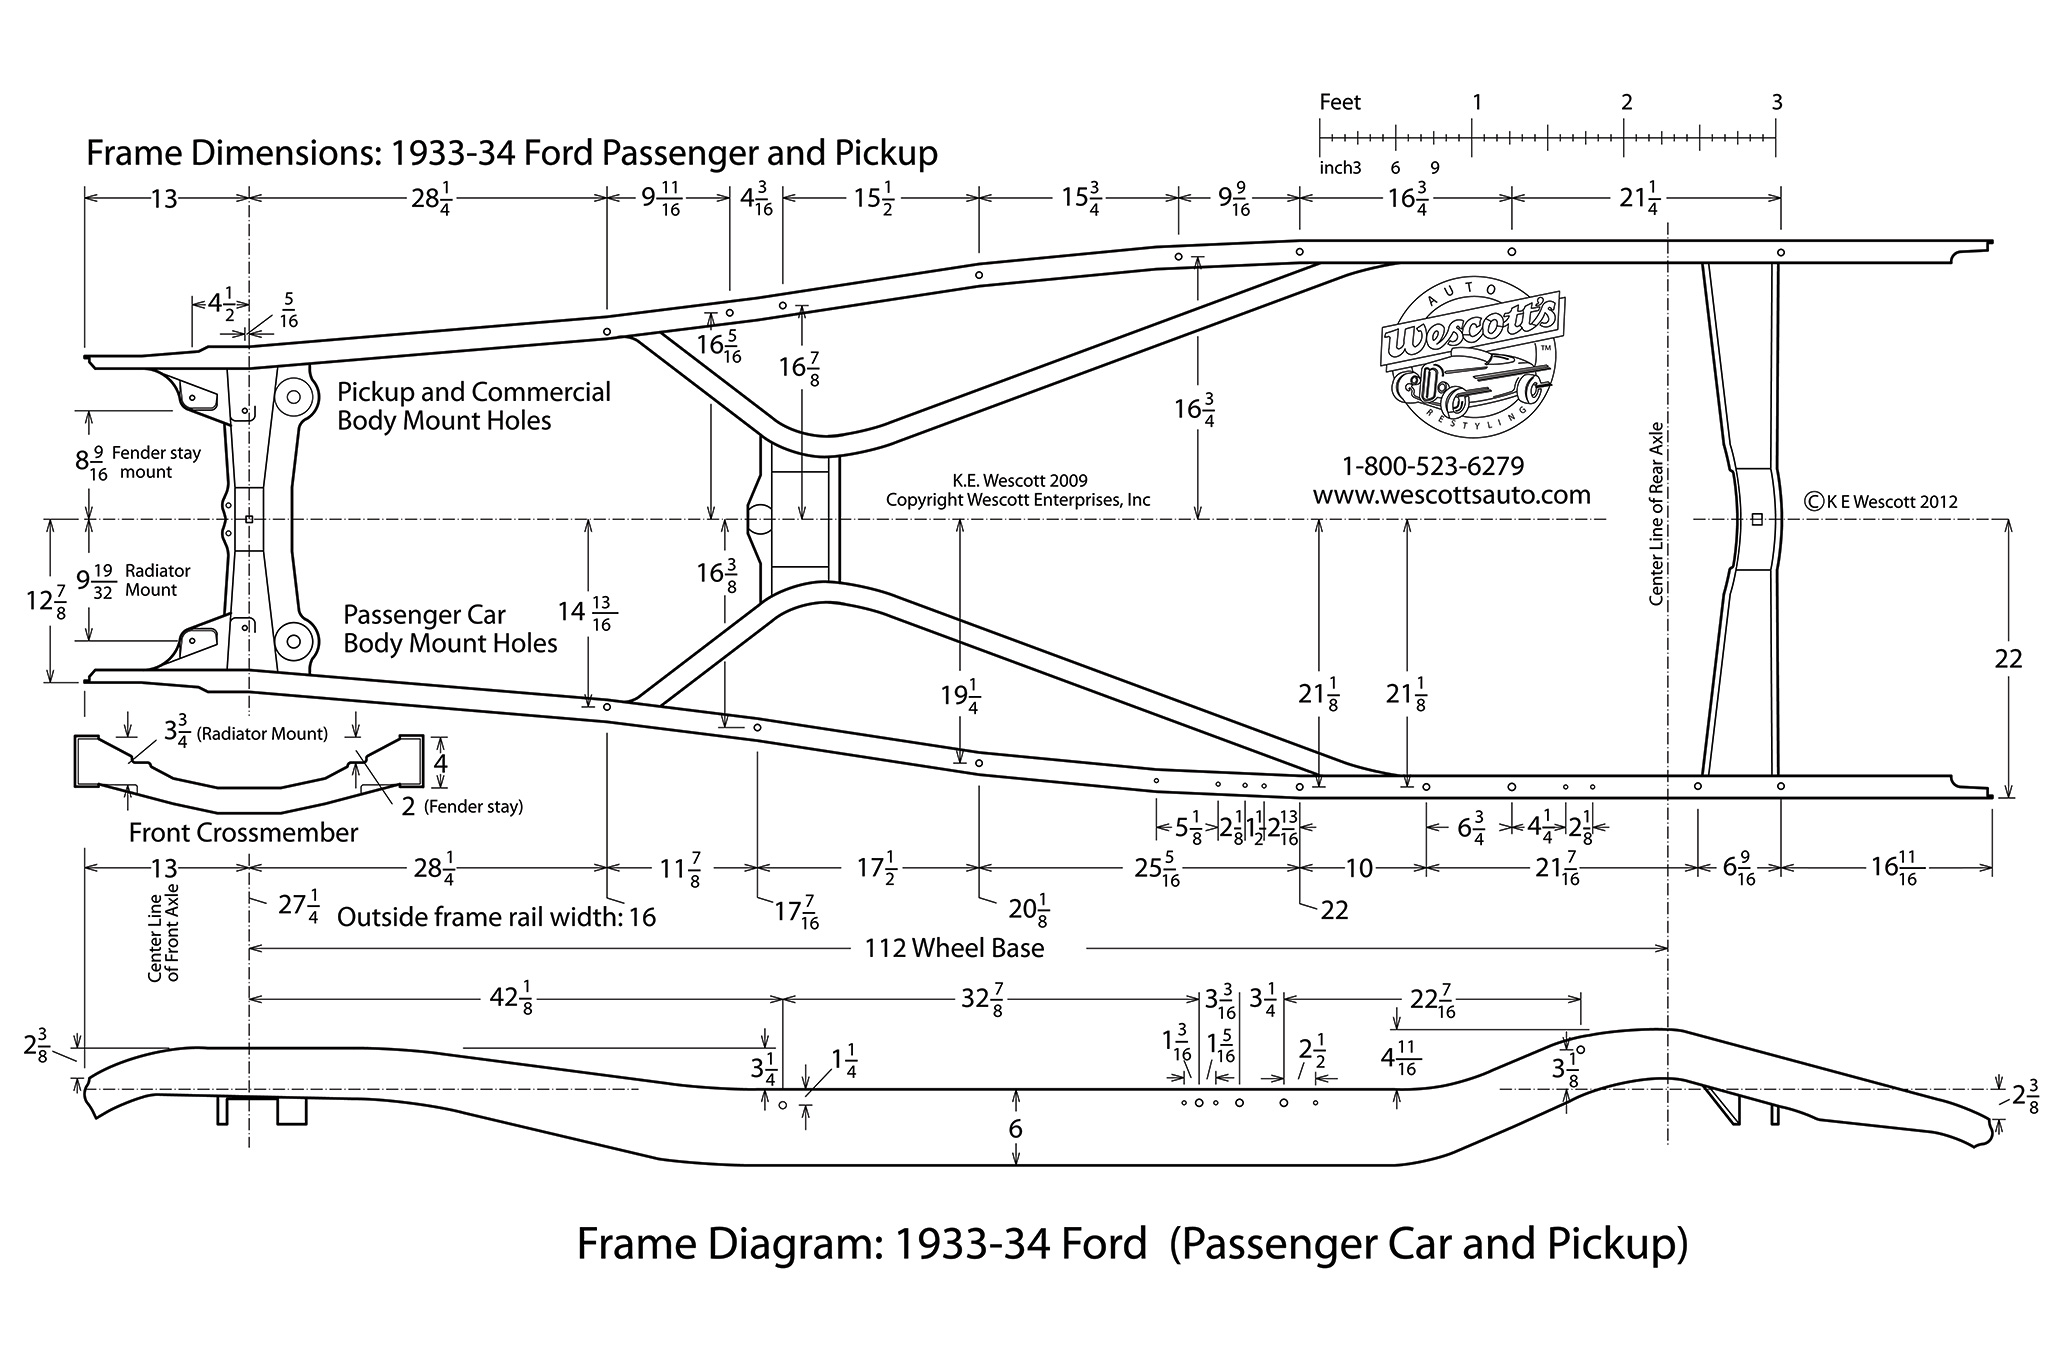 The location of where the stations will meet up with the stock frame came from a blueprint created by the folks at Wescott's Auto (and available for free on their website). The measurements also show how wide the front spreader bar spacing should be.